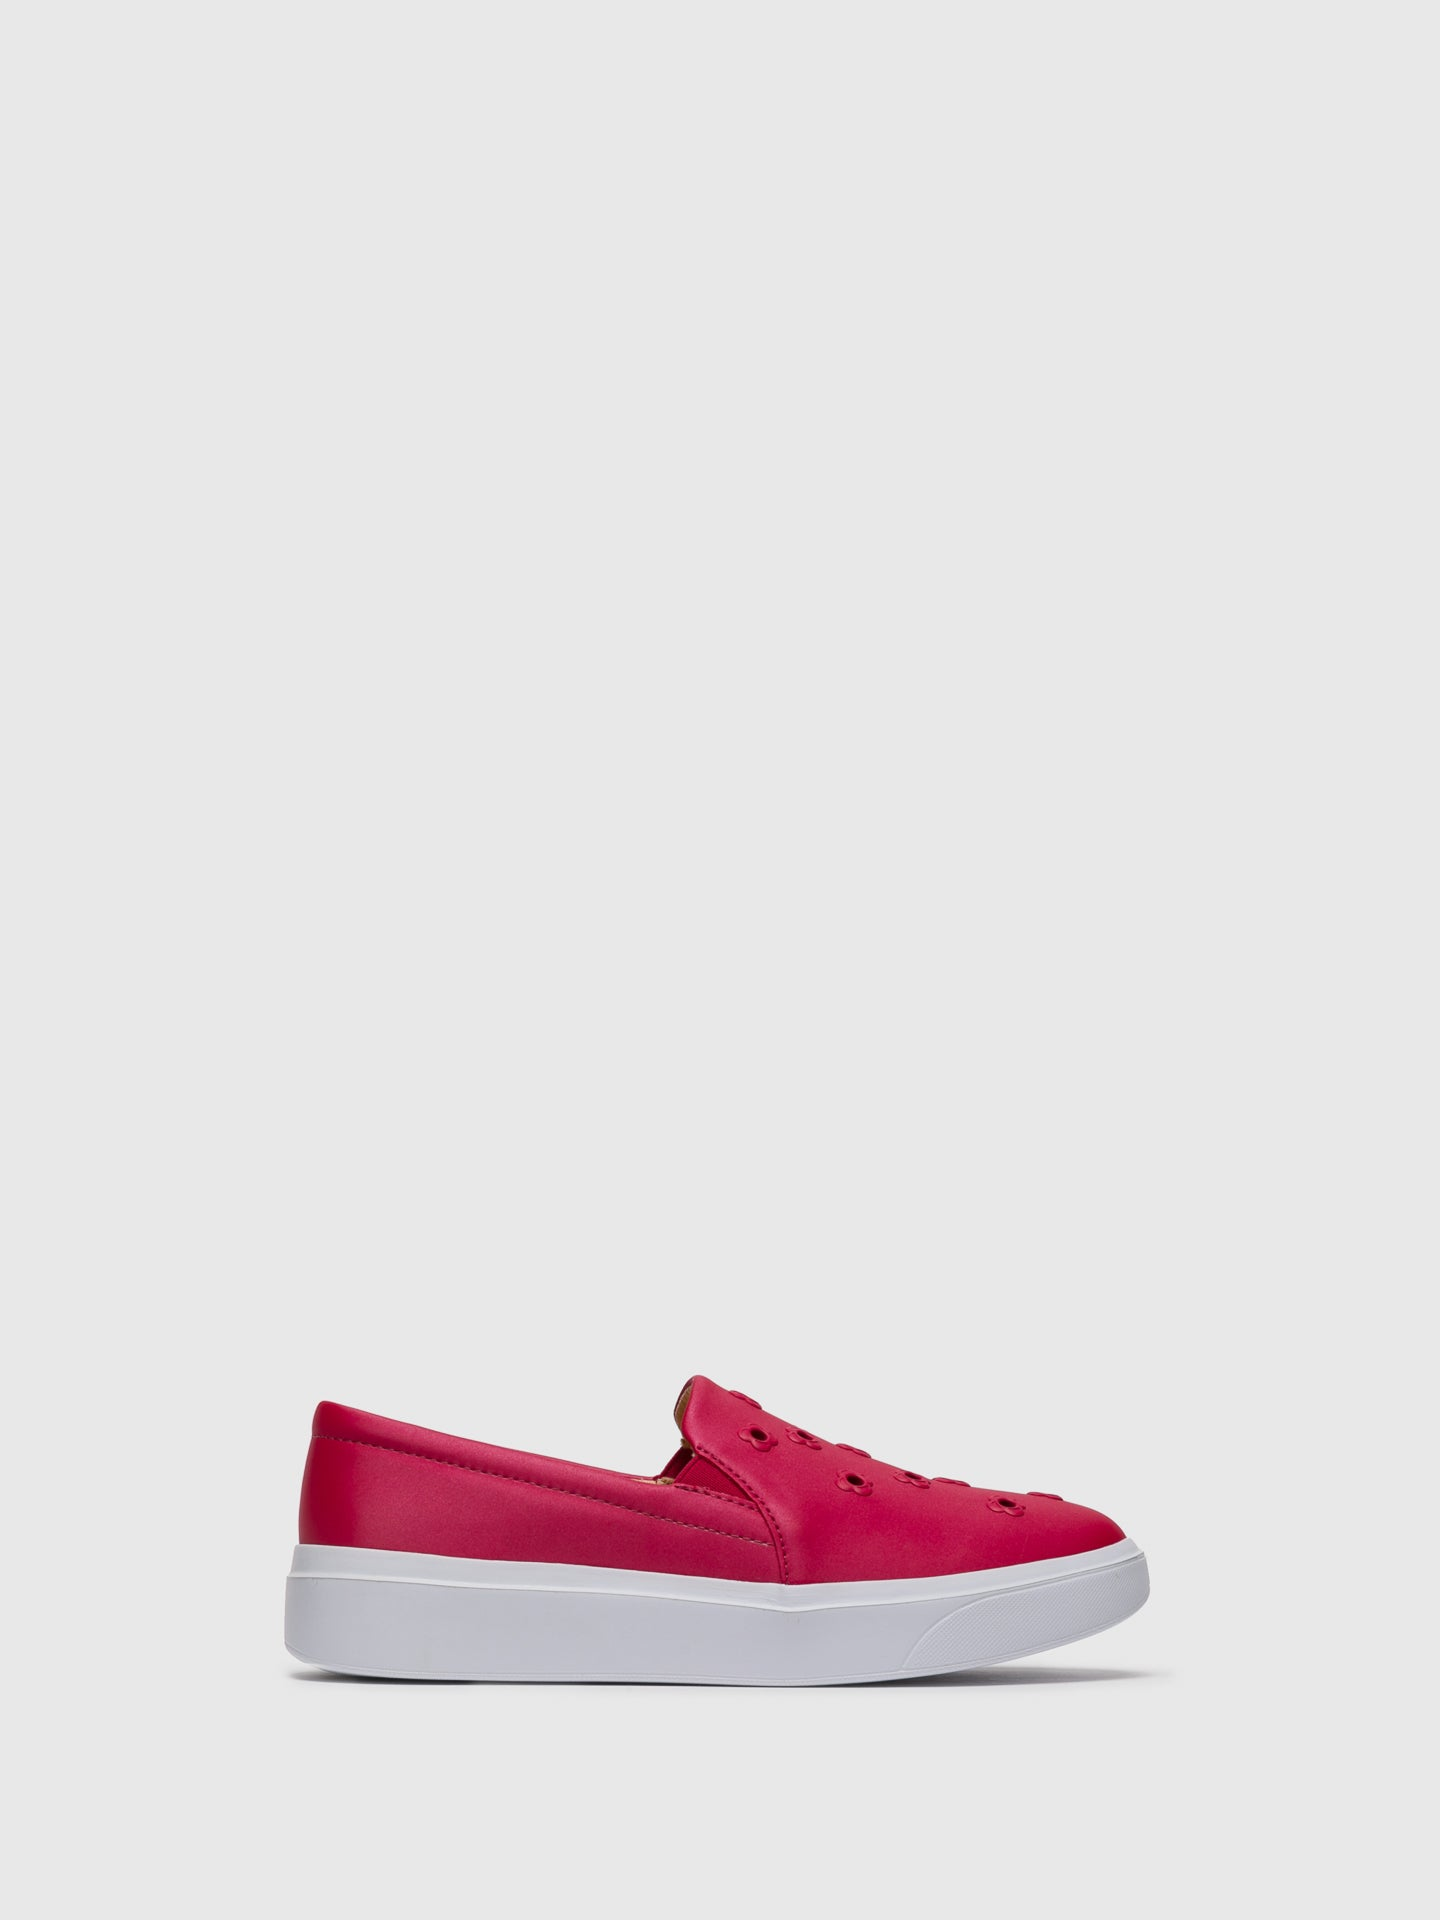 PETITE JOLIE by PARODI Pink Slip-on Trainers